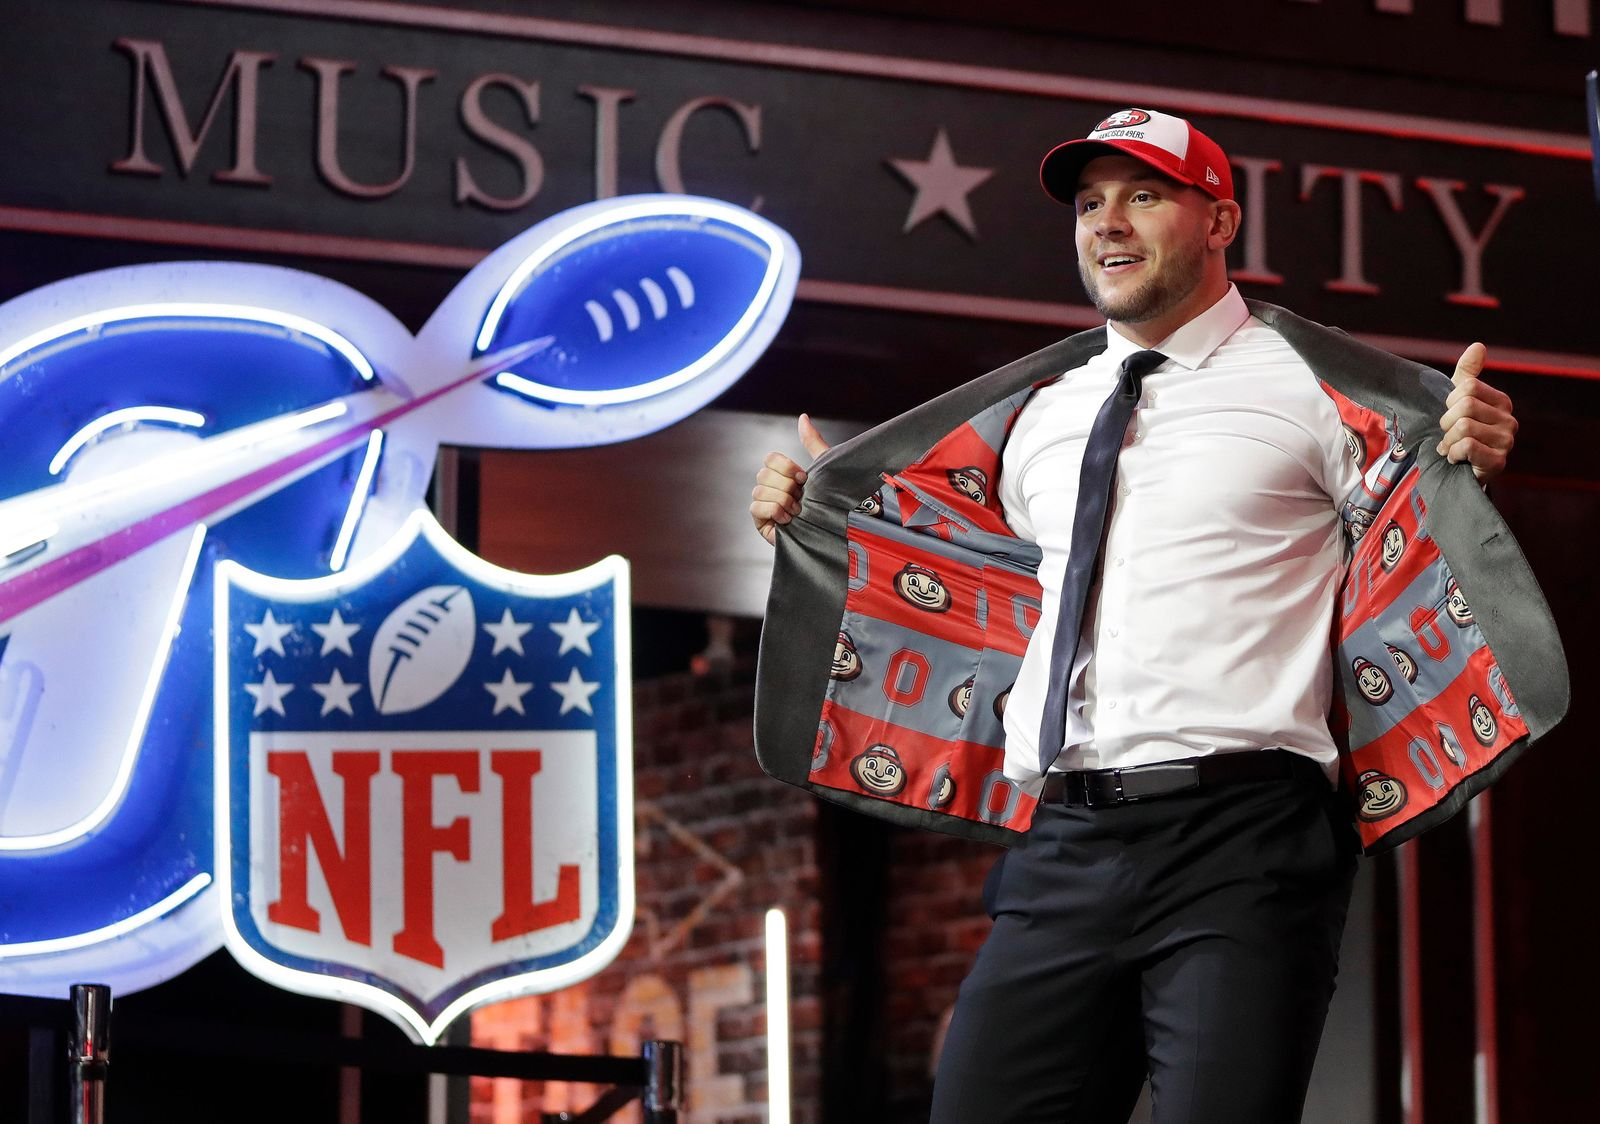 Ohio State defensive end Nick Bosa walks the stage after the San Francisco 49ers selected Bosa in the first round at the NFL football draft, Thursday, April 25, 2019, in Nashville, Tenn. (AP Photo/Mark Humphrey)